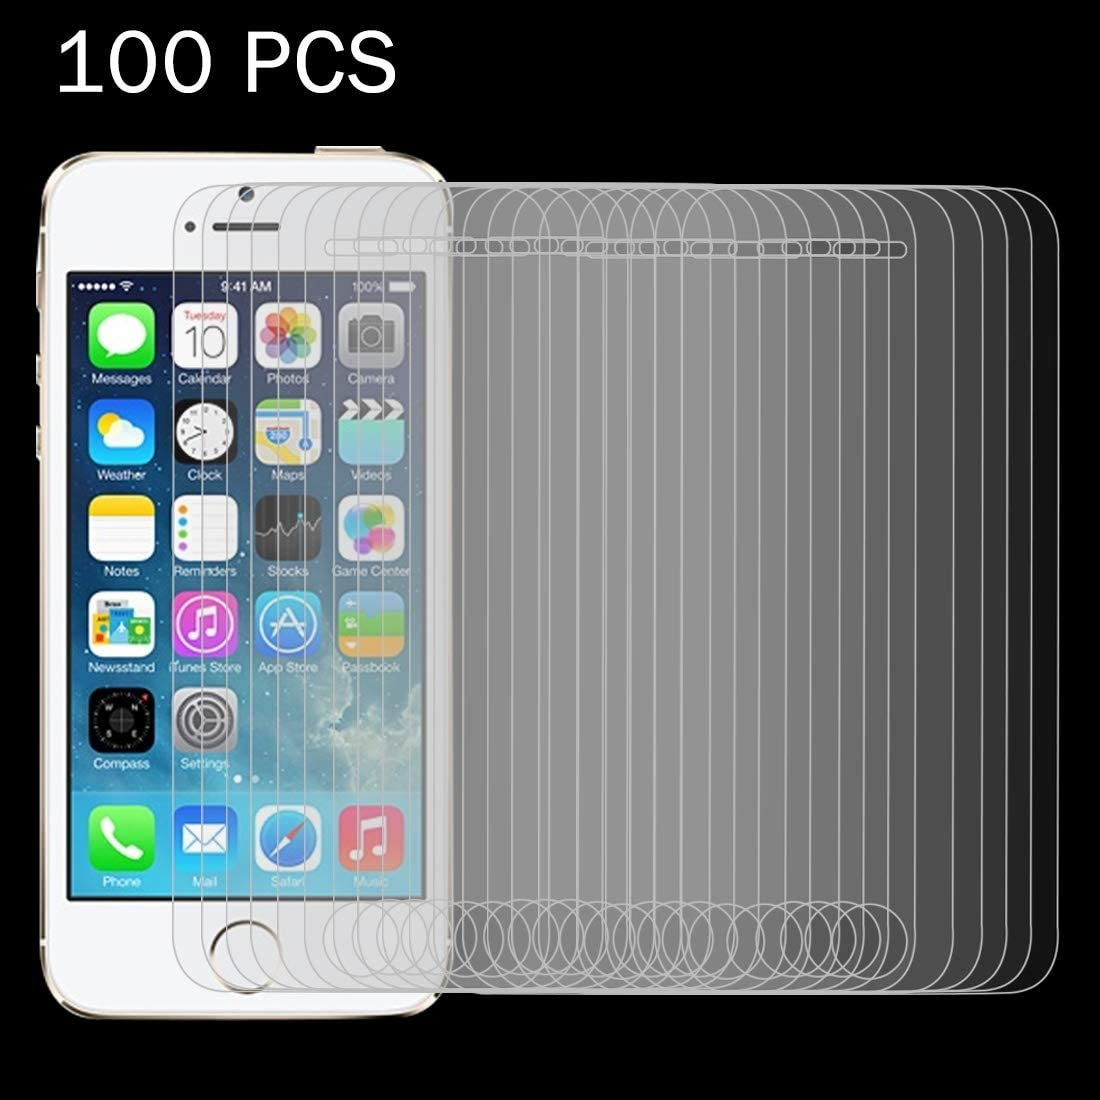 HAIJUN Phone Screen Film 100 PCS for iPhone SE /& 5 /& 5S /& 5C 0.26mm 9H Surface Hardness 2.5D Explosion-Proof Tempered Glass Film Anti-Scratch Tempered Glass